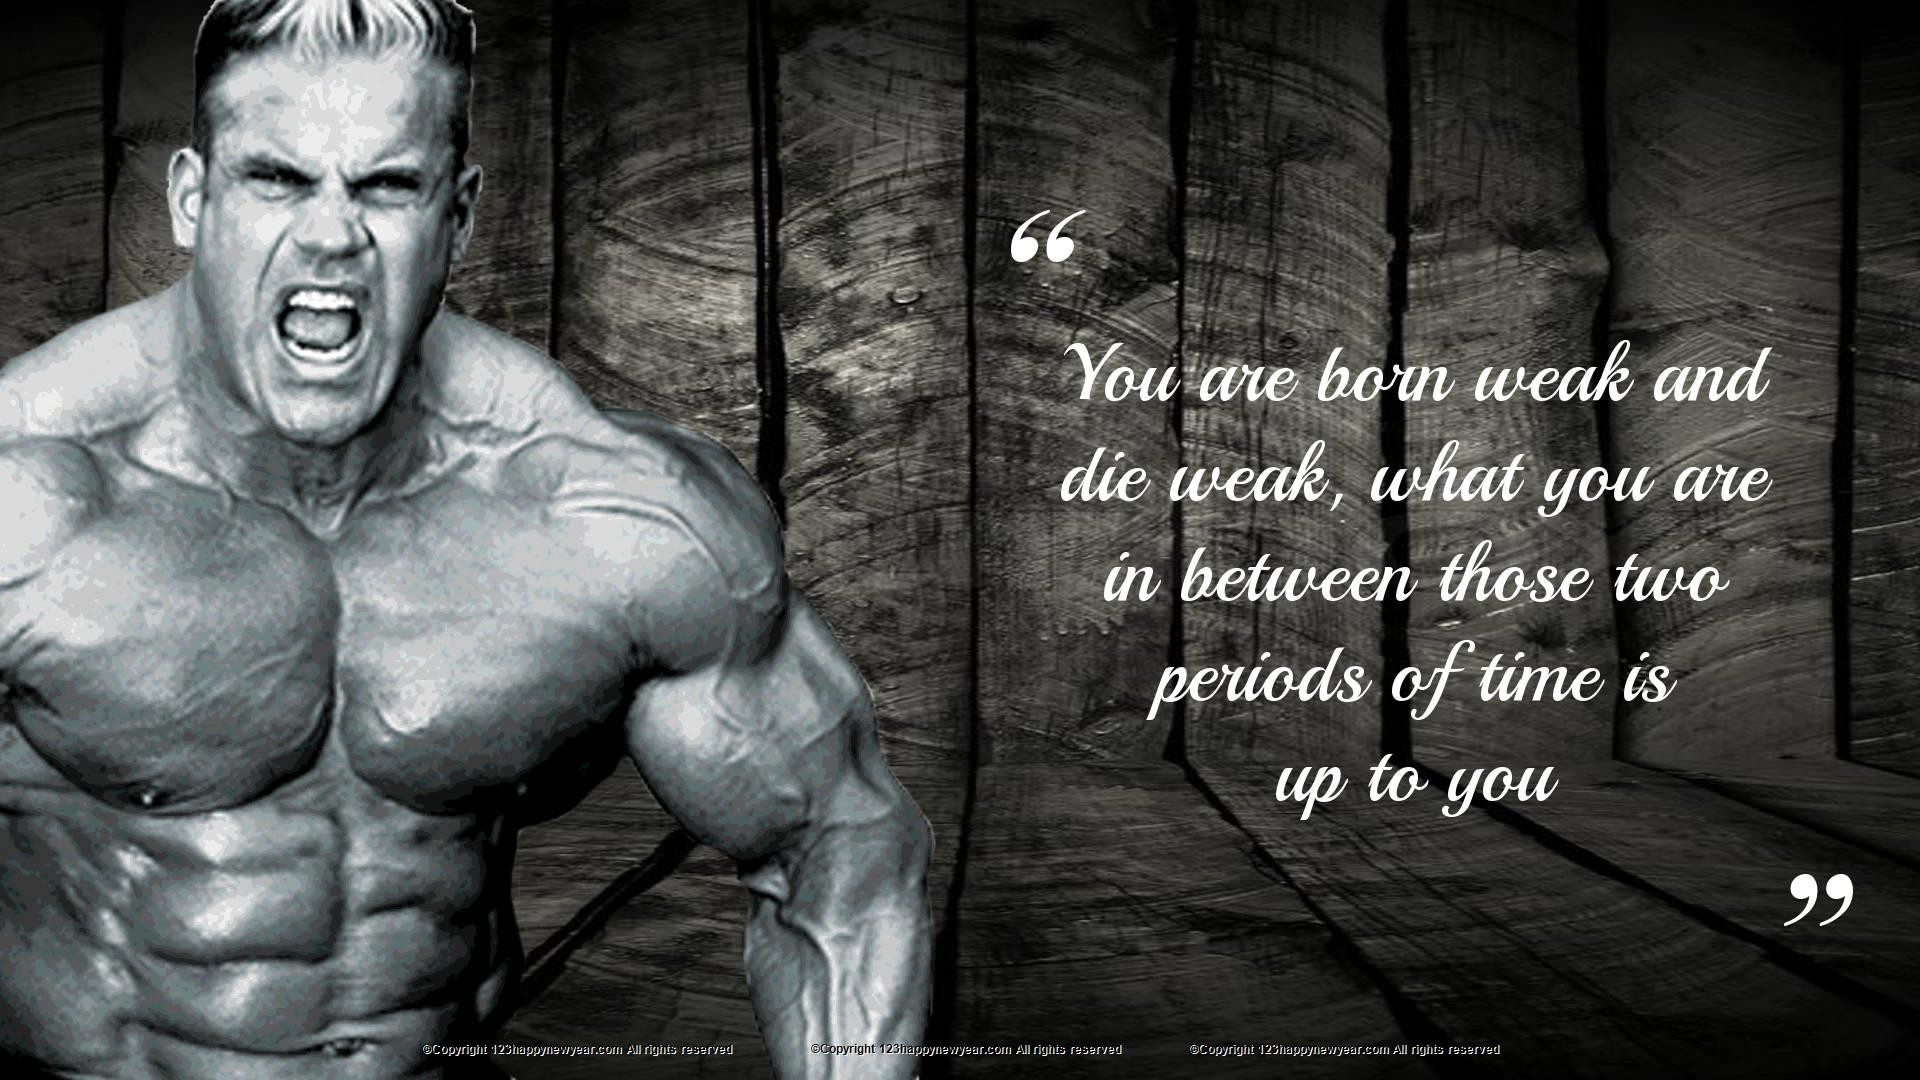 Gym Wallpaper ·① Download Free Beautiful HD Wallpapers For